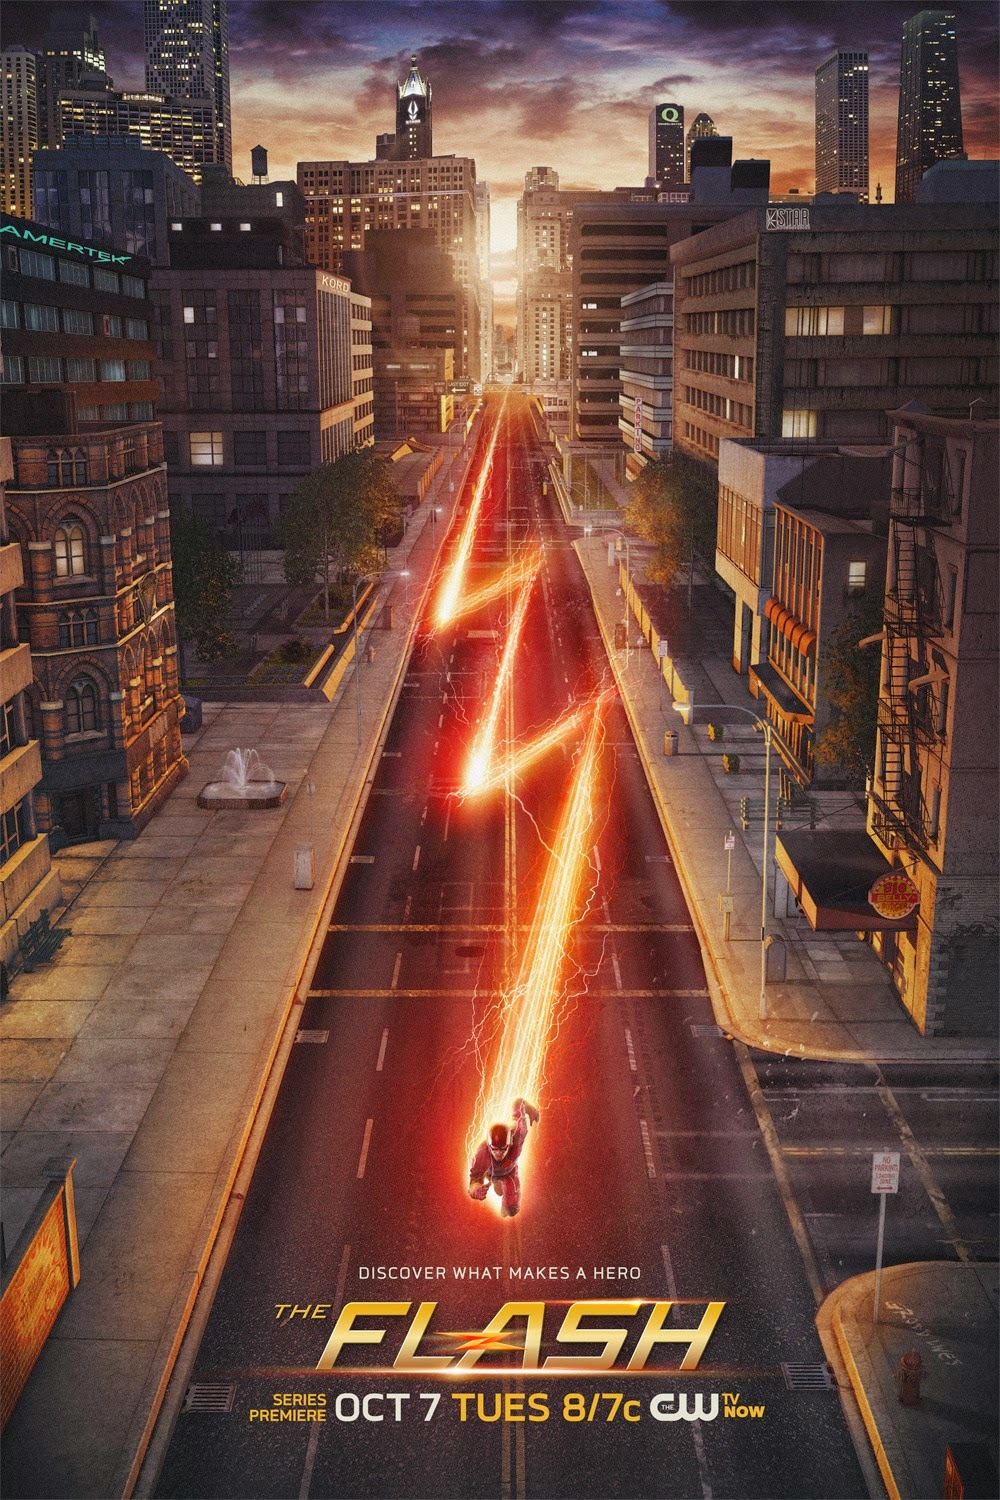 The Flash Teaser Television Poster